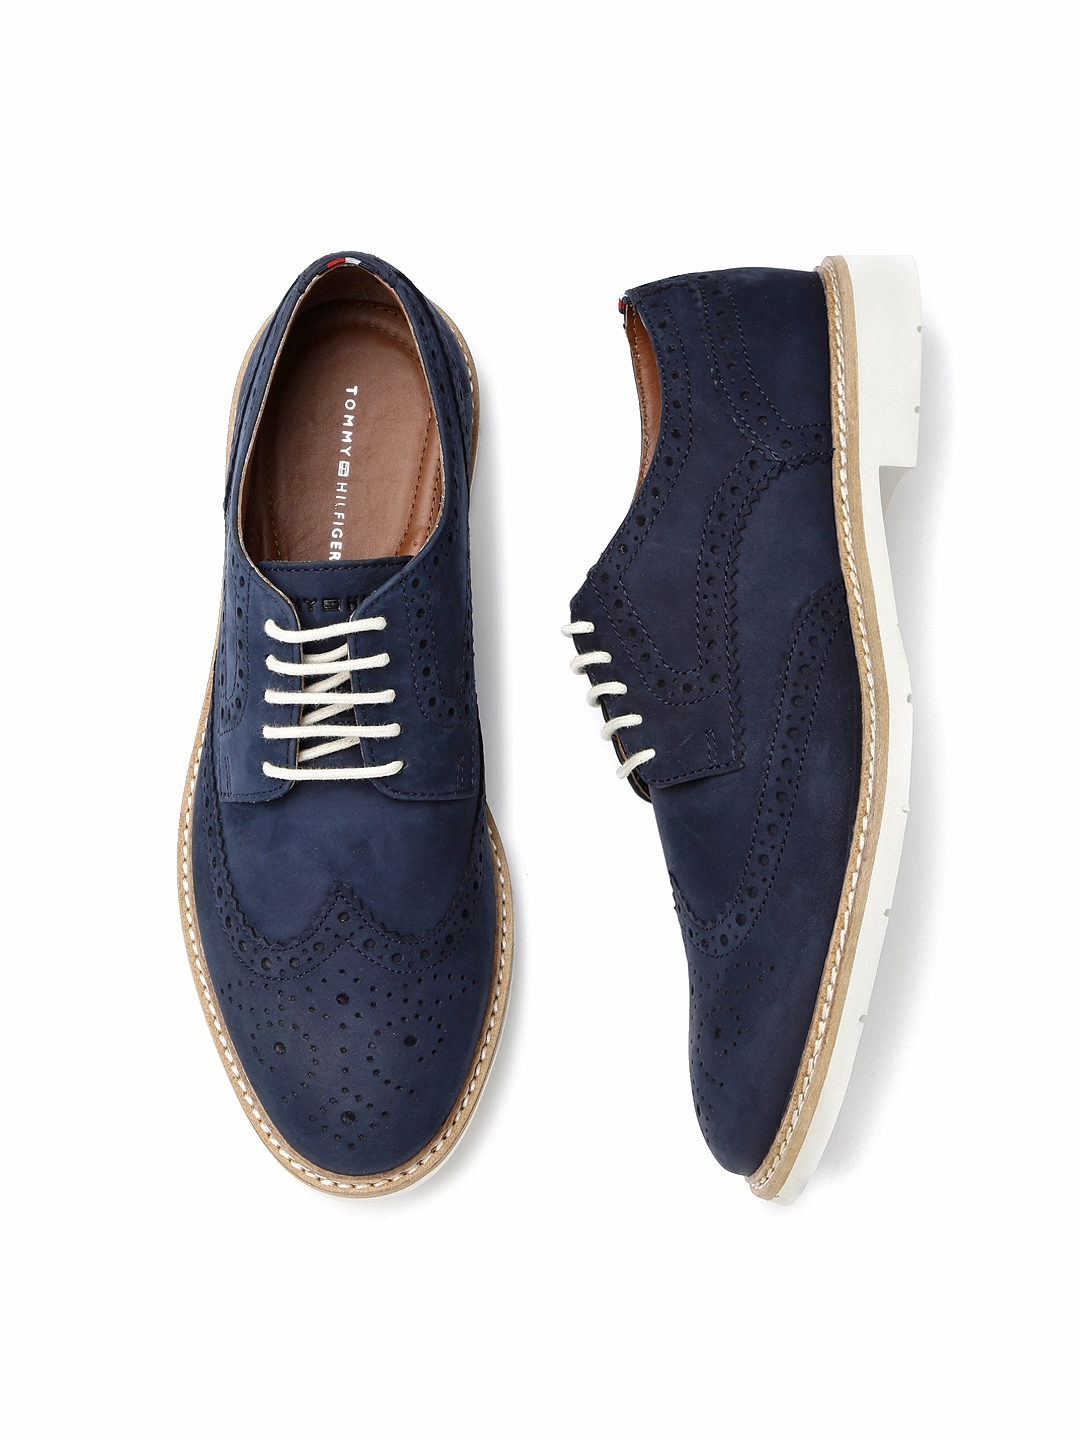 e66a96e57 Buy Tommy Hilfiger Men Navy Perforated Suede Brogues - Casual Shoes ...